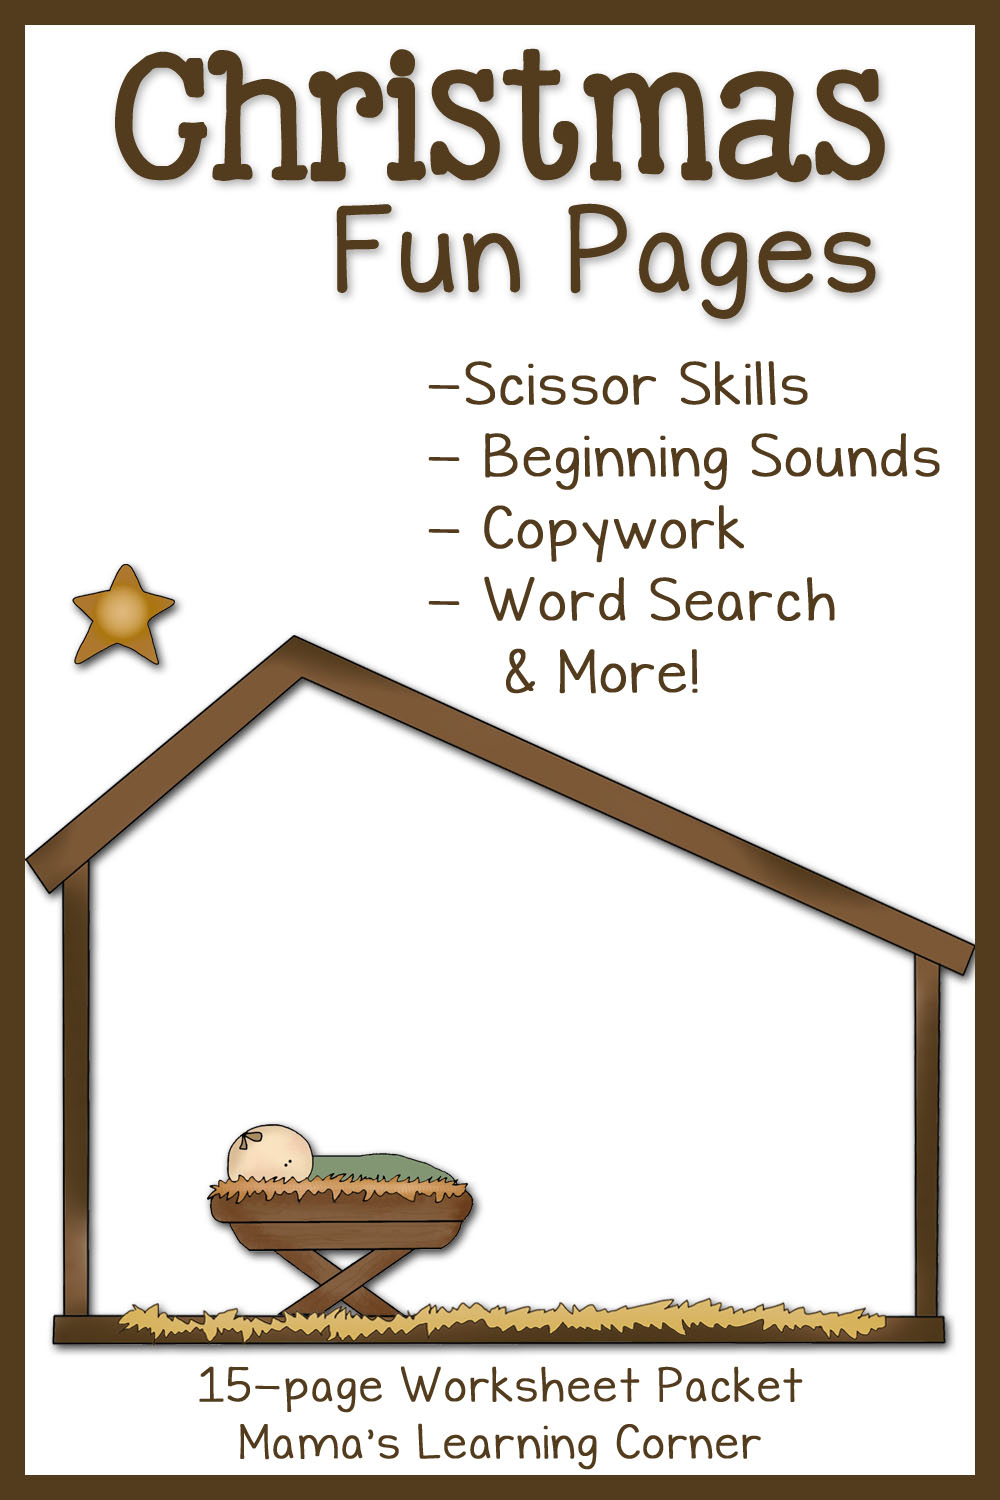 Christmas Fun Pages: Free 15-Page Worksheet Set - Mamas Learning Corner - Christmas Fun Worksheets Printable Free